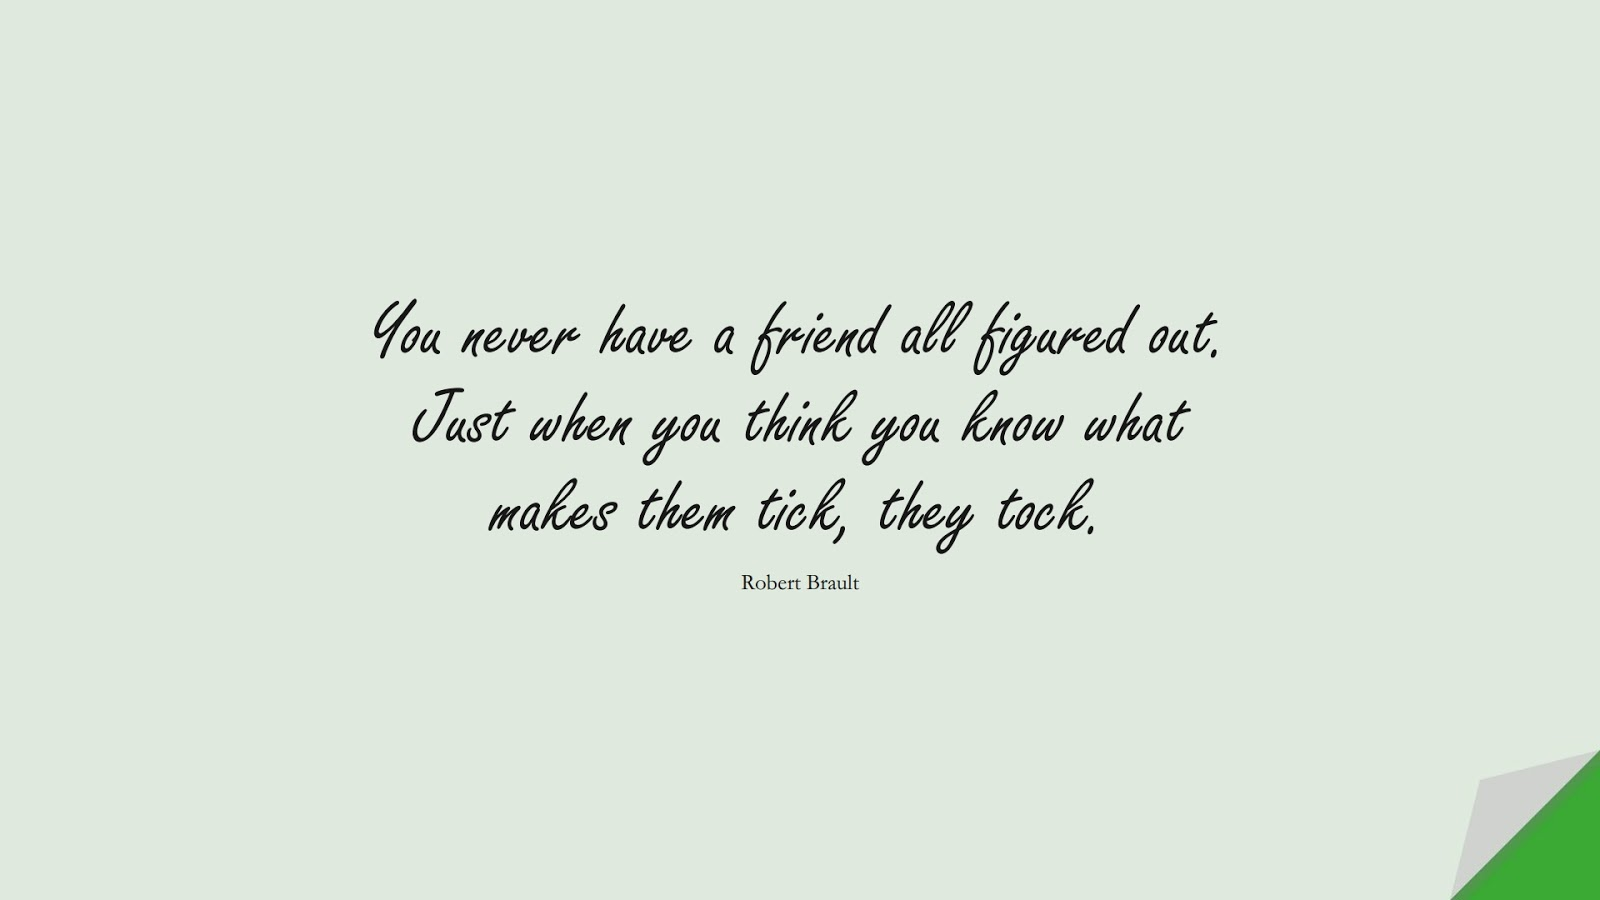 You never have a friend all figured out. Just when you think you know what makes them tick, they tock. (Robert Brault);  #ChangeQuotes